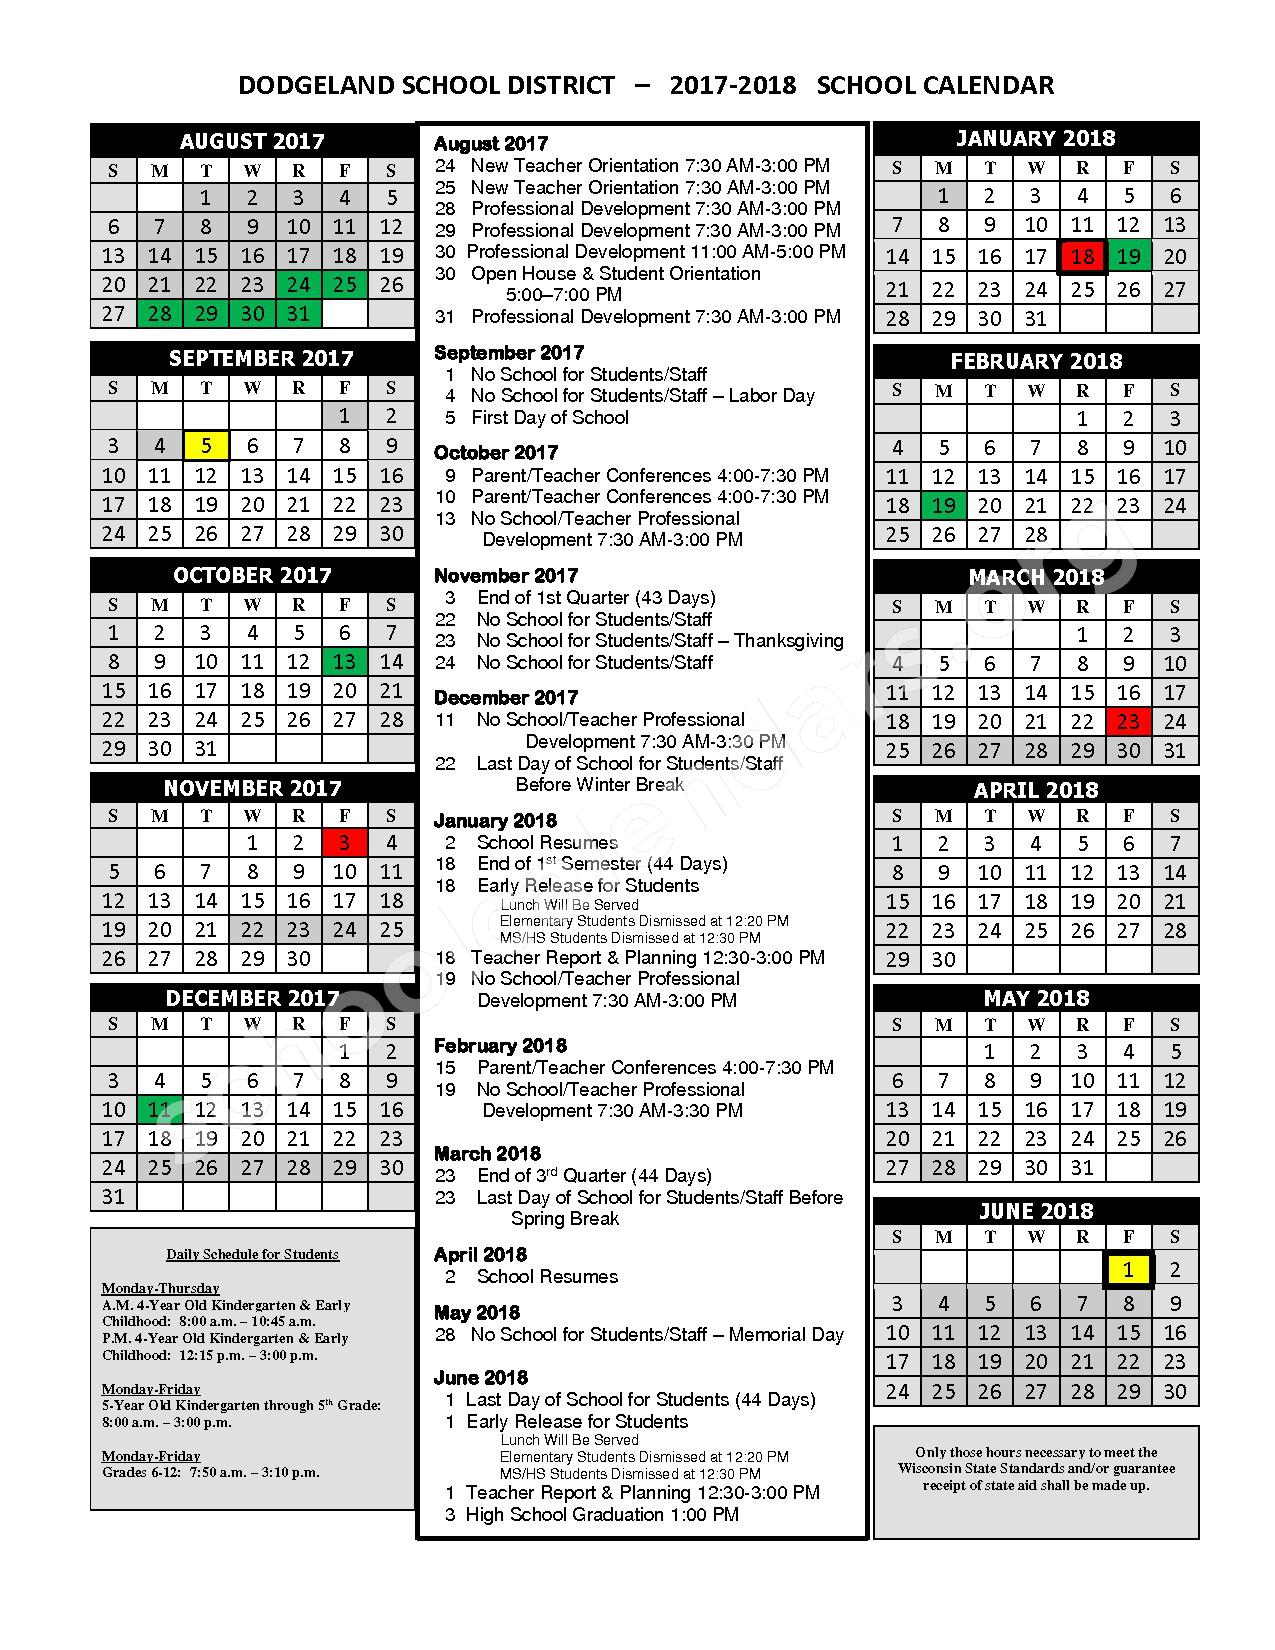 2017 - 2018 School Calendar – Dodgeland School District – page 1